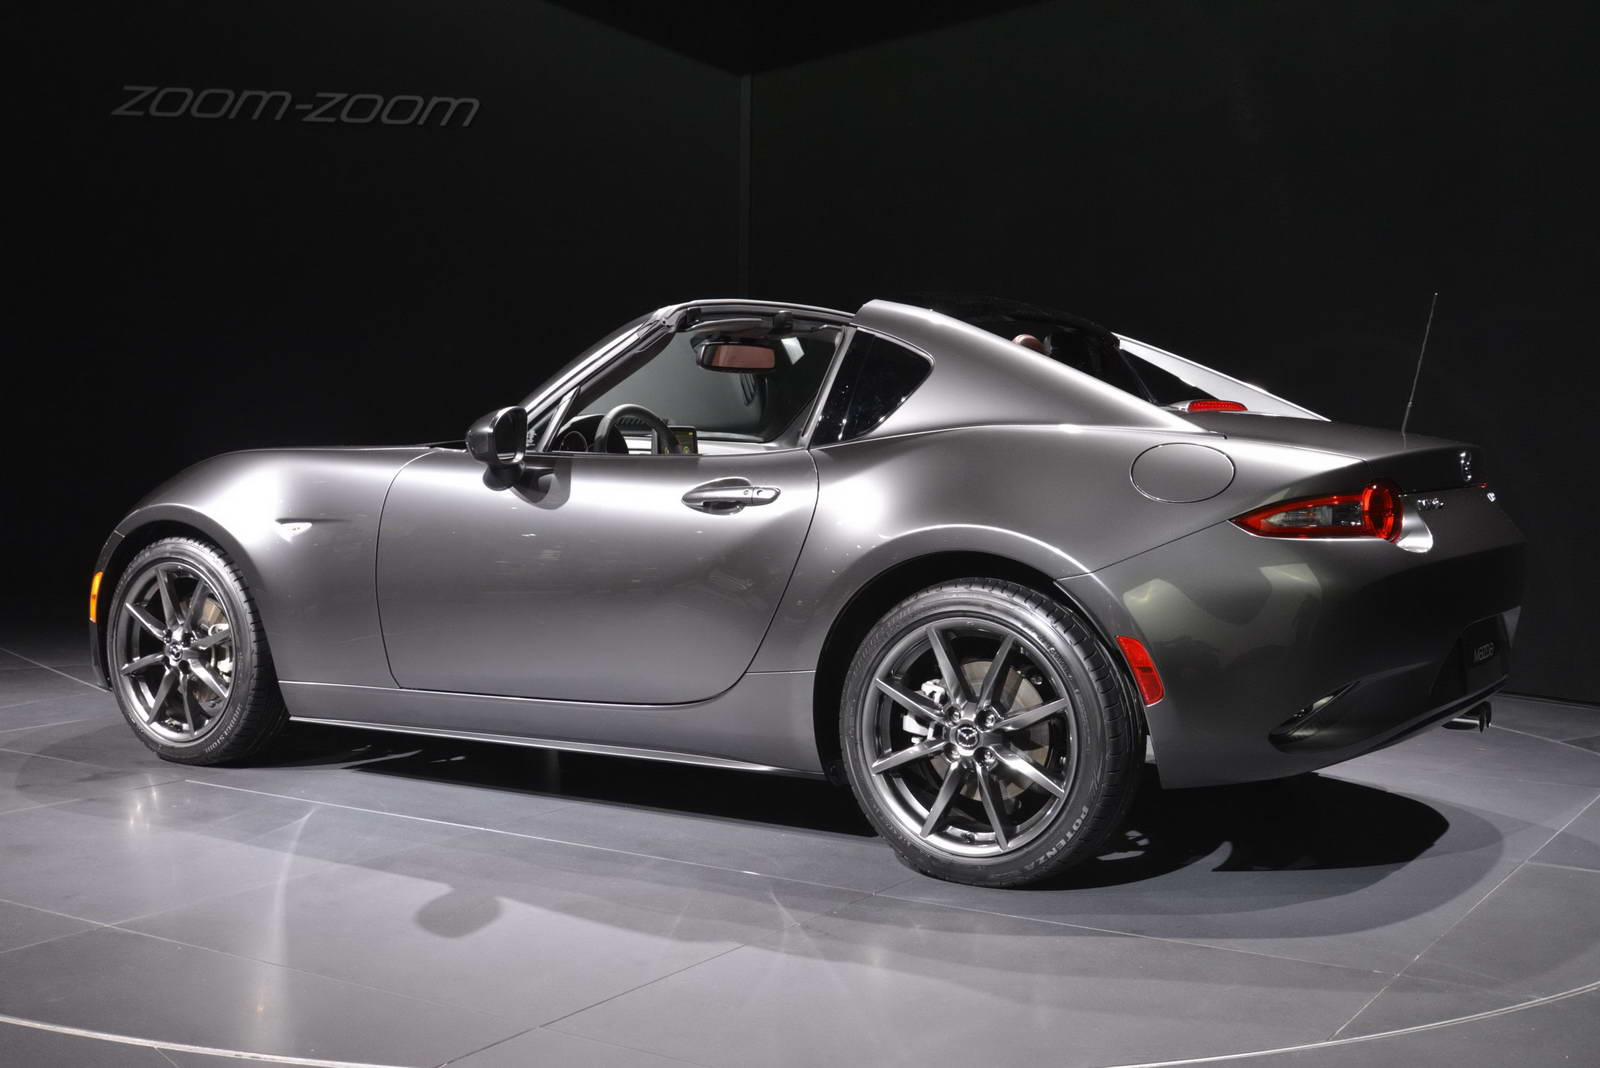 2017 Mazda Mx 5 Gets Hard For Nyc Calls Itself The Rf